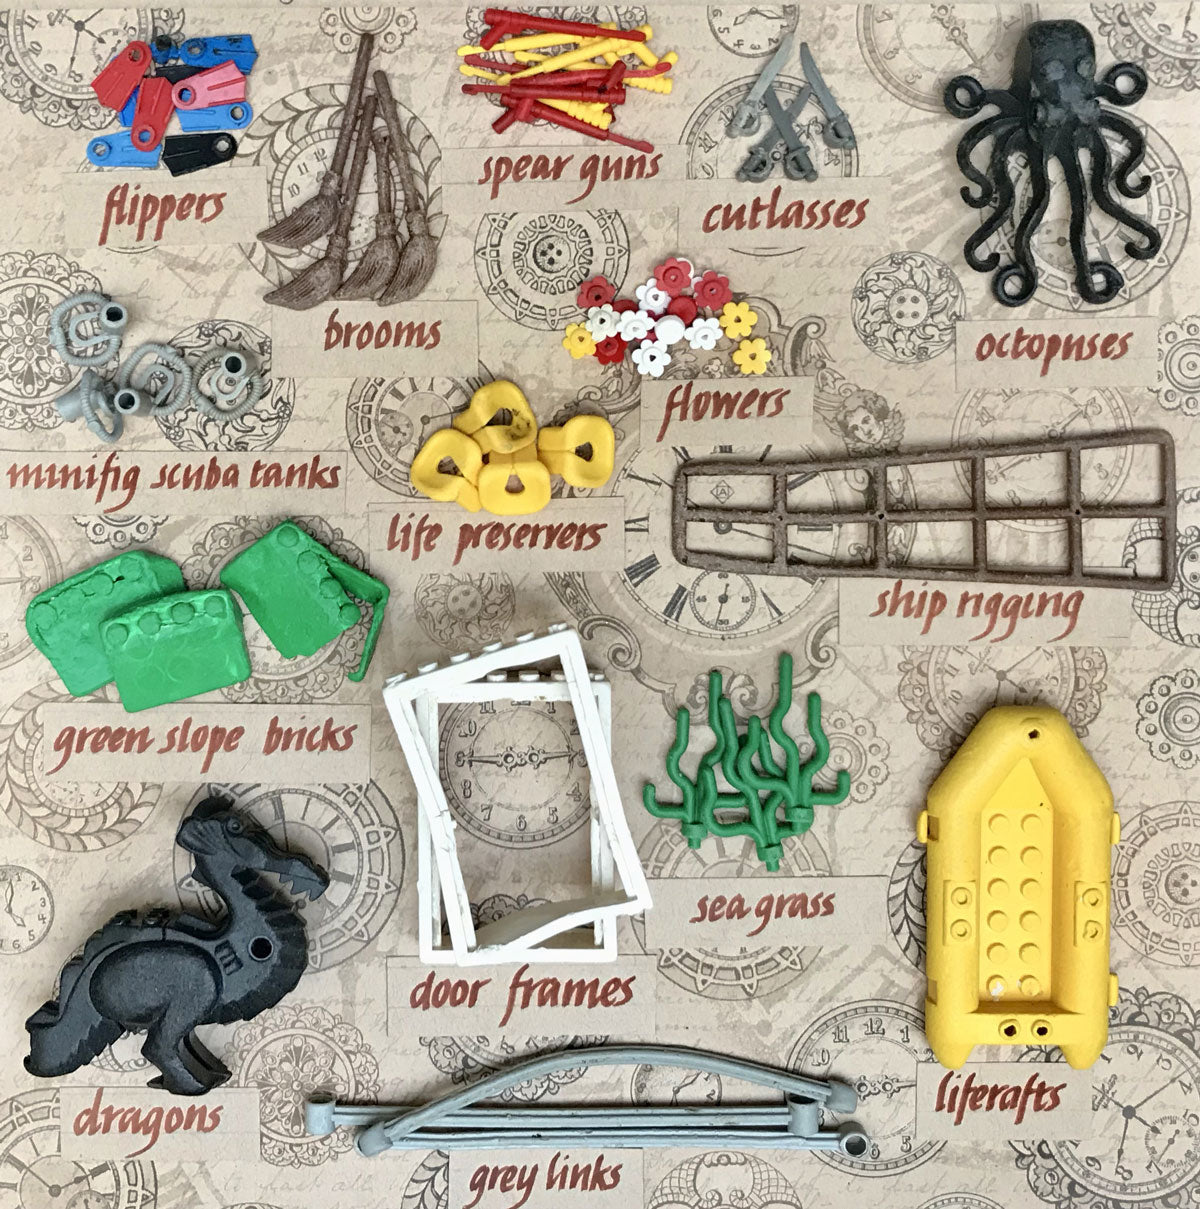 lego lost at sea book beach found container spill